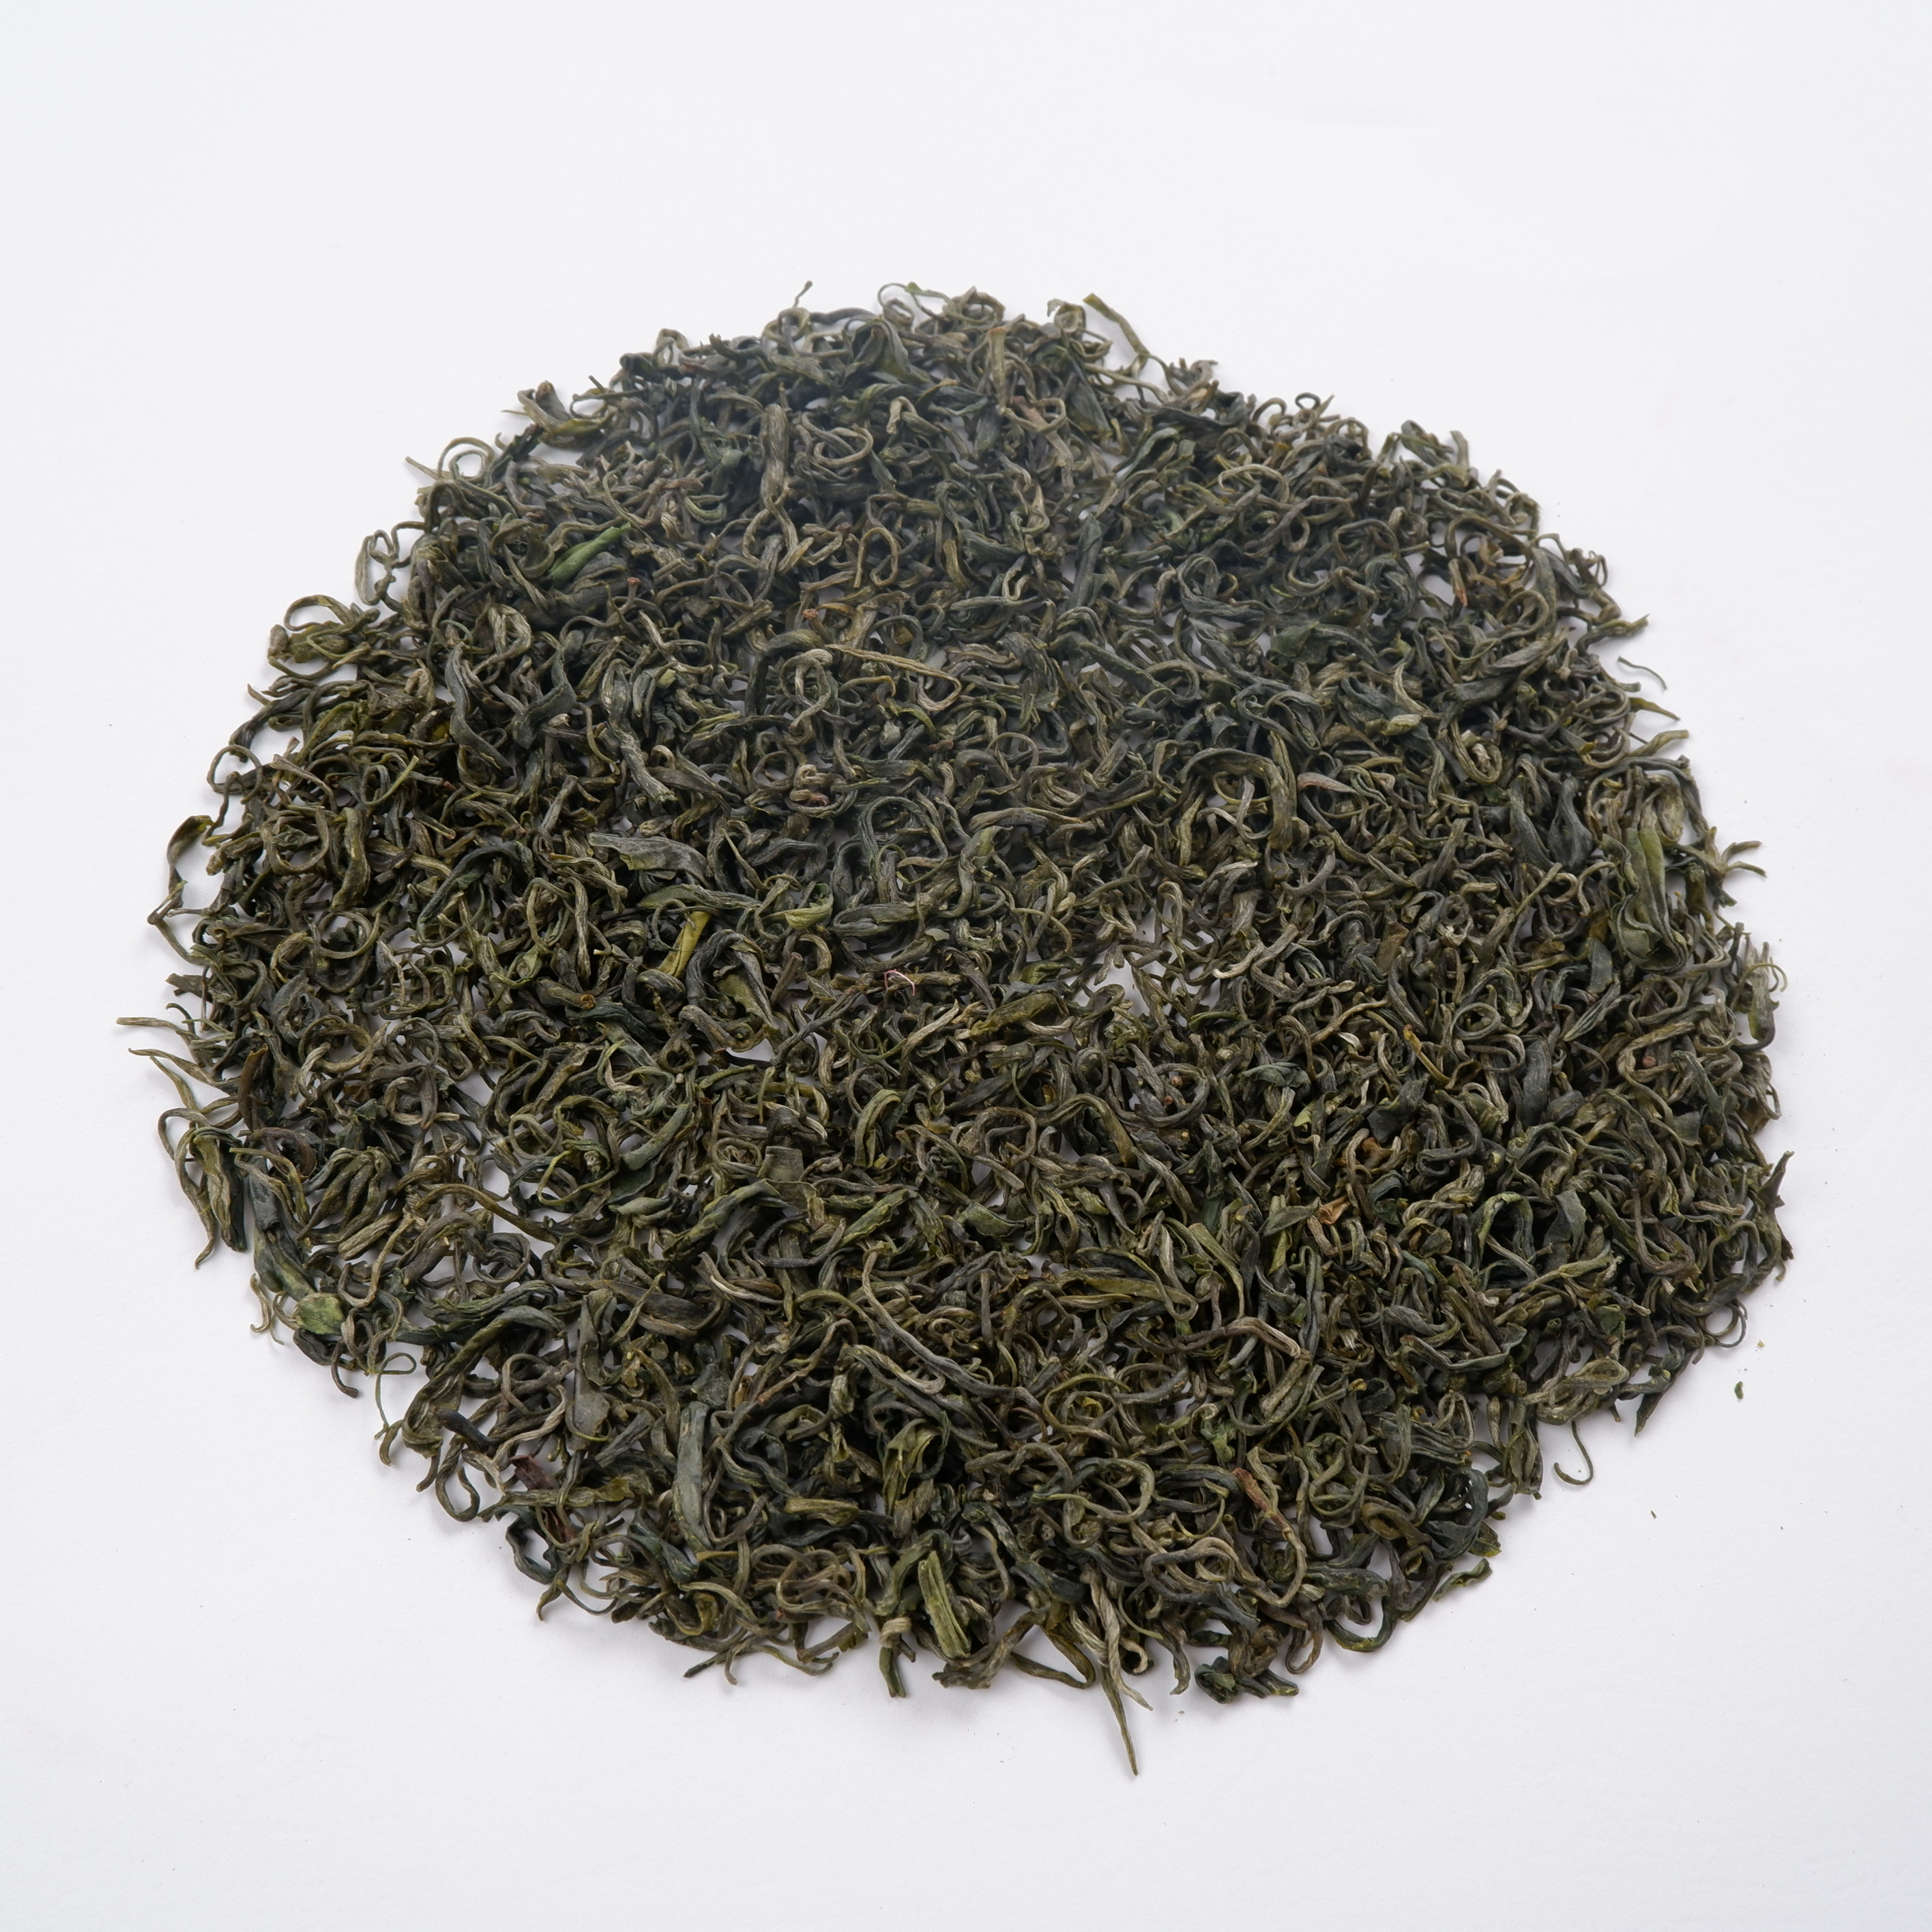 Chinese High Quality Green Tea Leaves with OEM Packing Model 2 - 4uTea | 4uTea.com